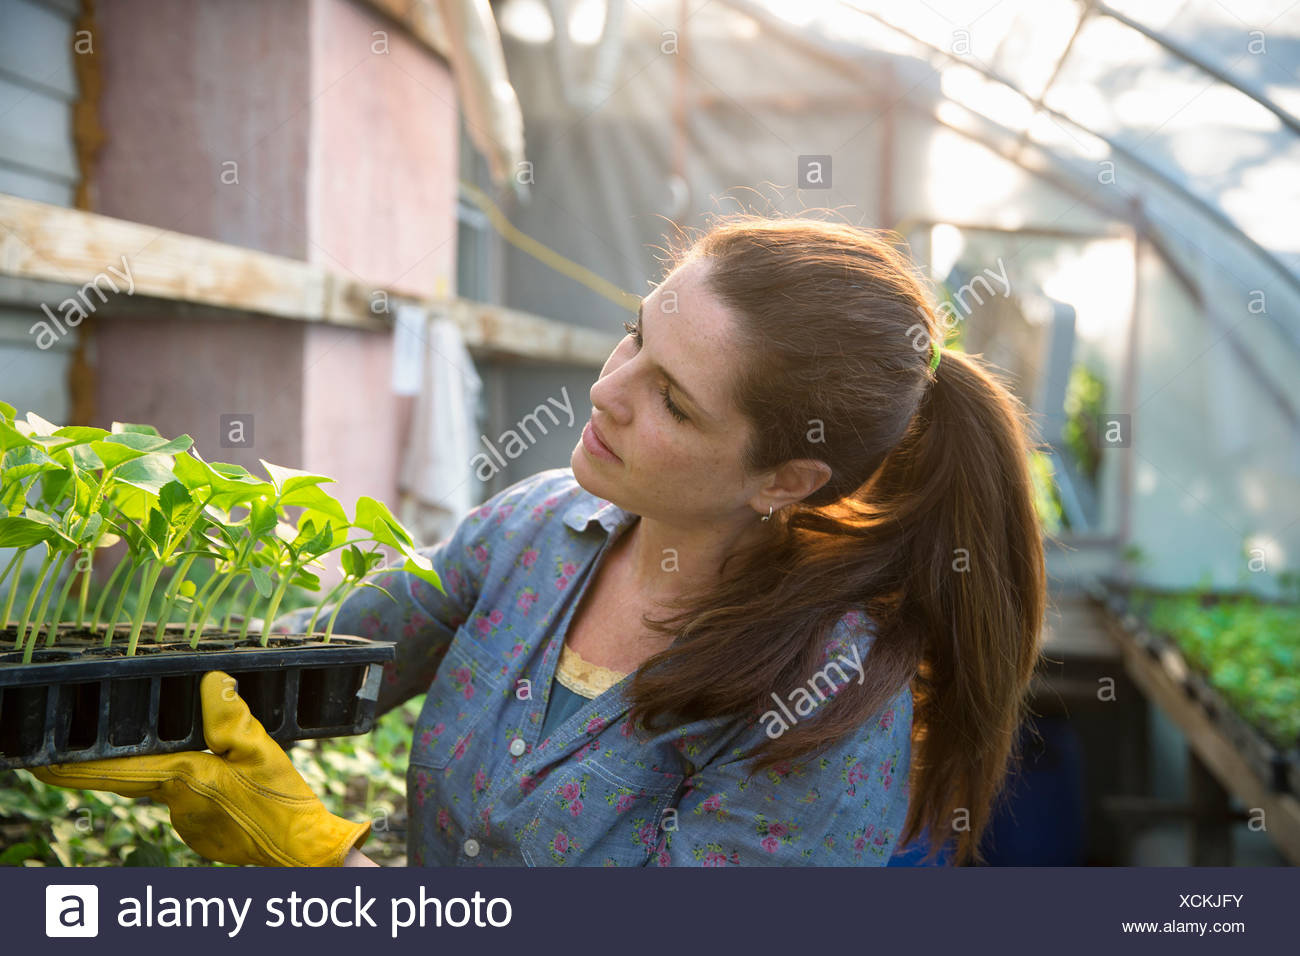 On the farm. A woman carrying trays of young organically grown seedlings, bean plants, out of a glasshouse. - Stock Image